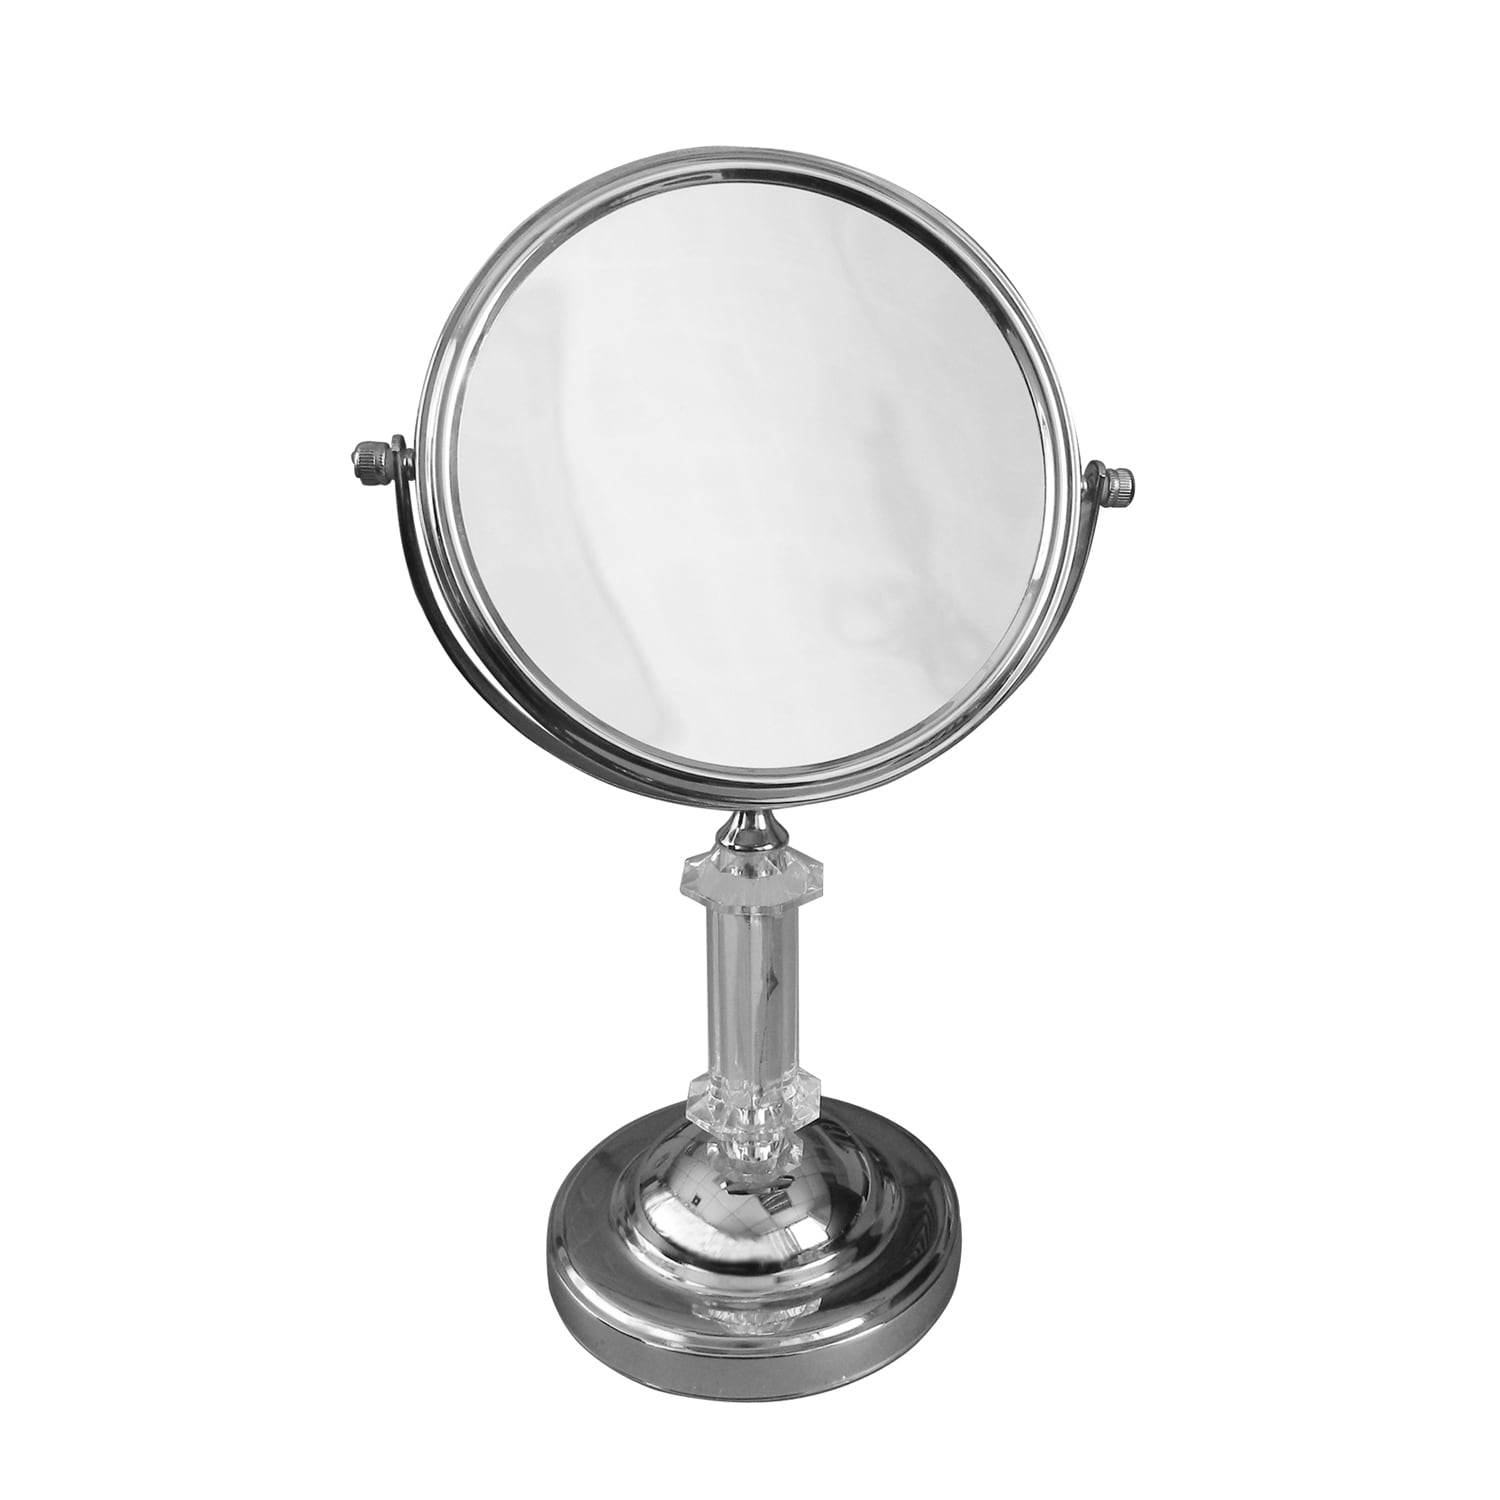 5x magnifying makeup mirror overstock shopping the best